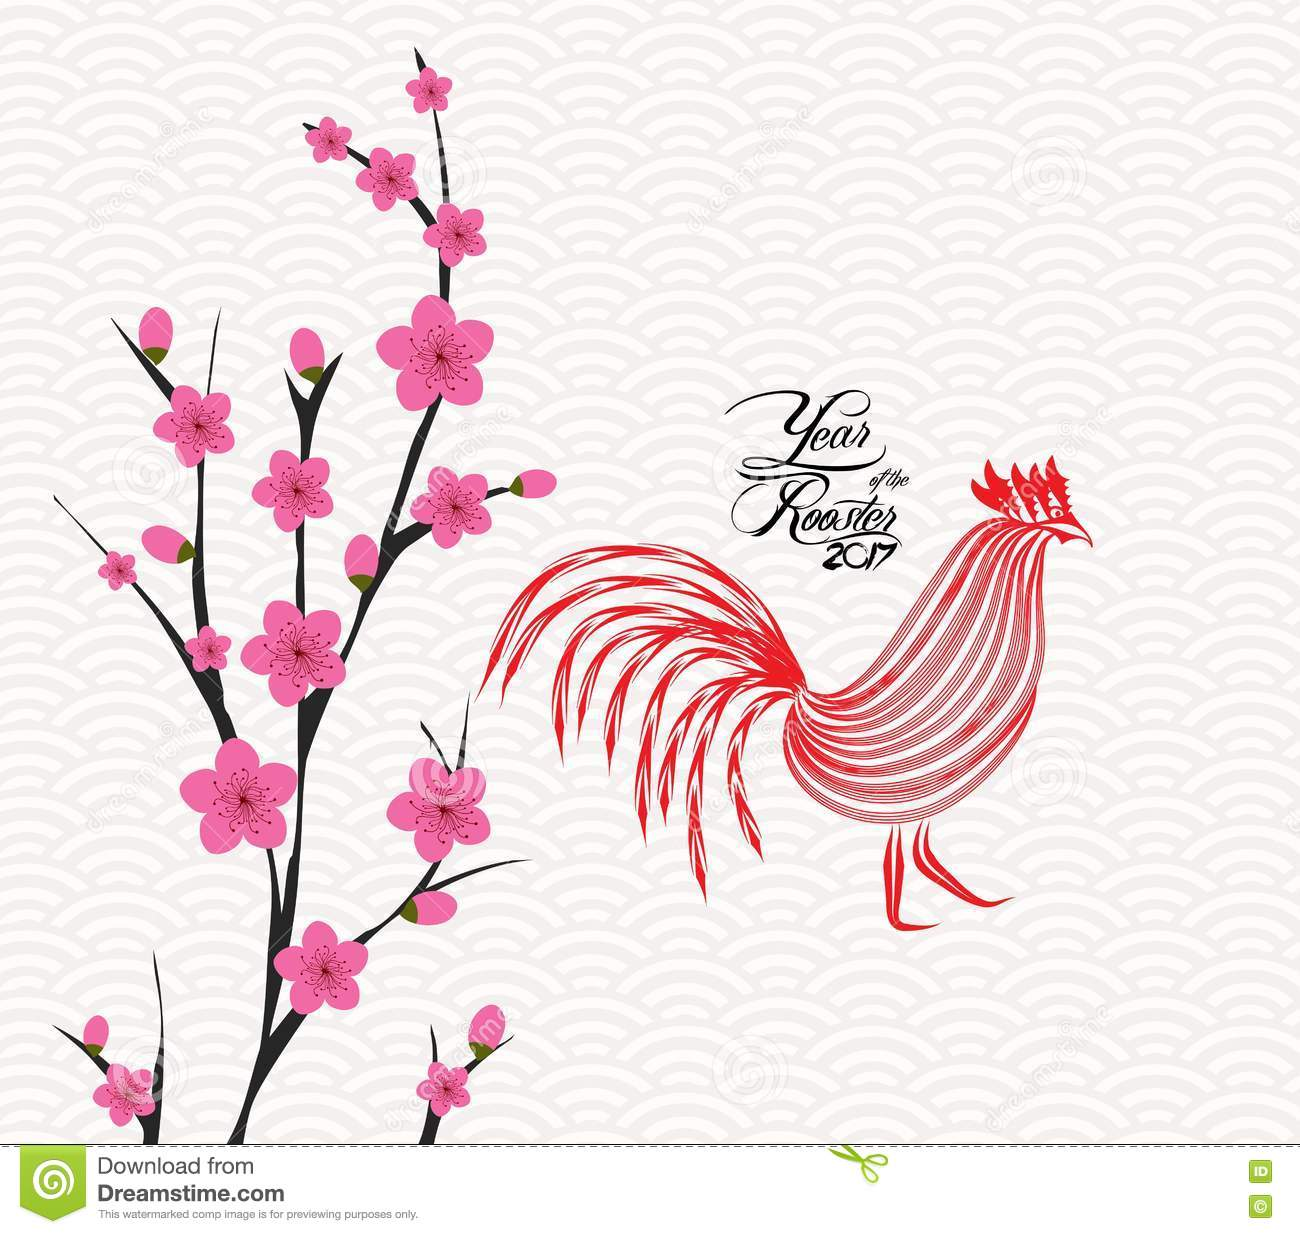 New year 2017 greeting pictures year of rooster happy chinese new year - Happy Chinese New Year 2017 Card Is Blossom Year Of The Rooster Royalty Free Stock